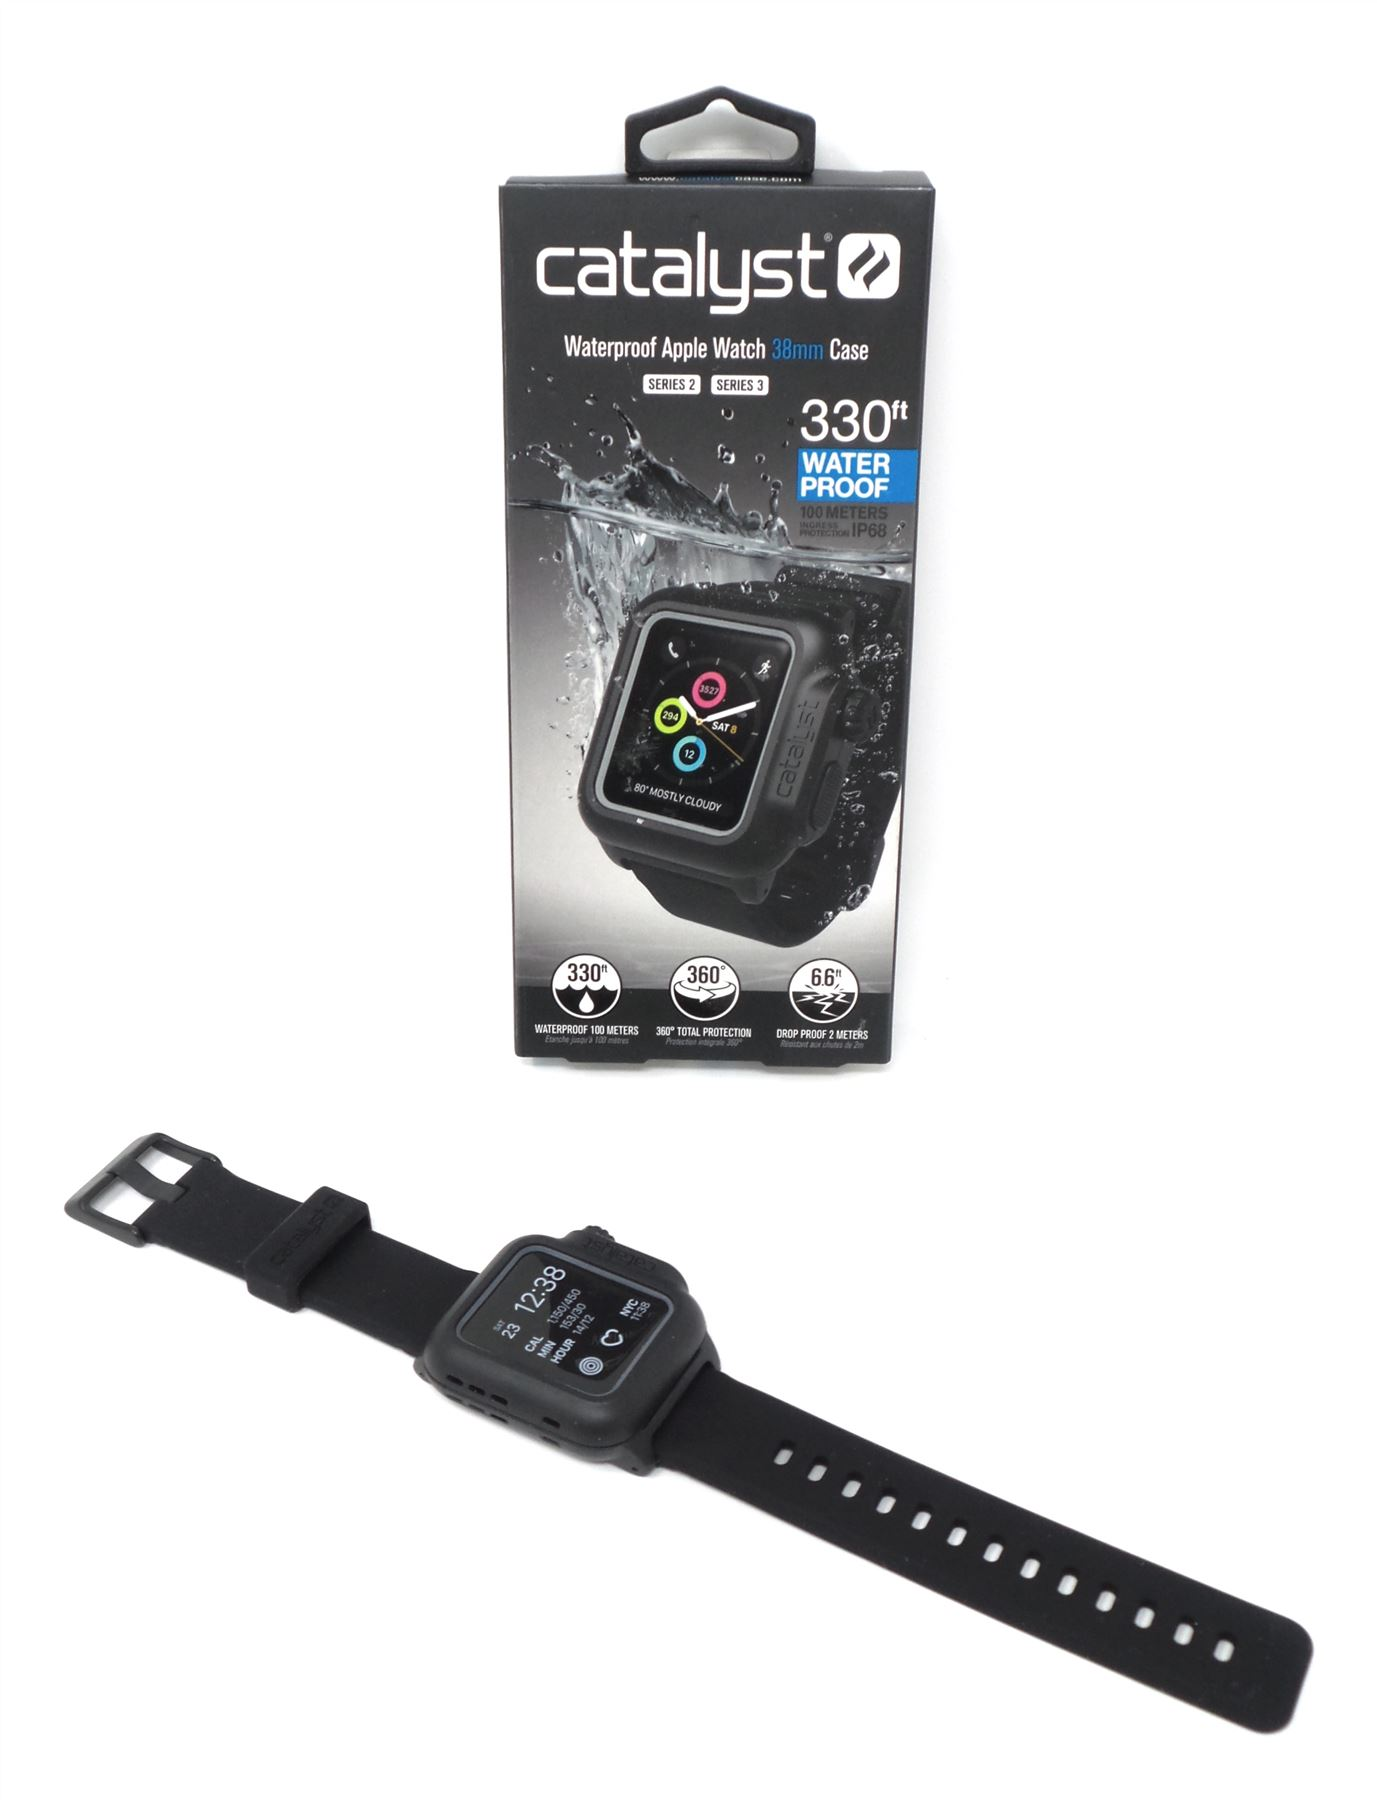 buy online ef001 080af Details about Catalyst Waterproof Case + Band for Apple Watch 38mm Series 2  & 3 Stealth Black